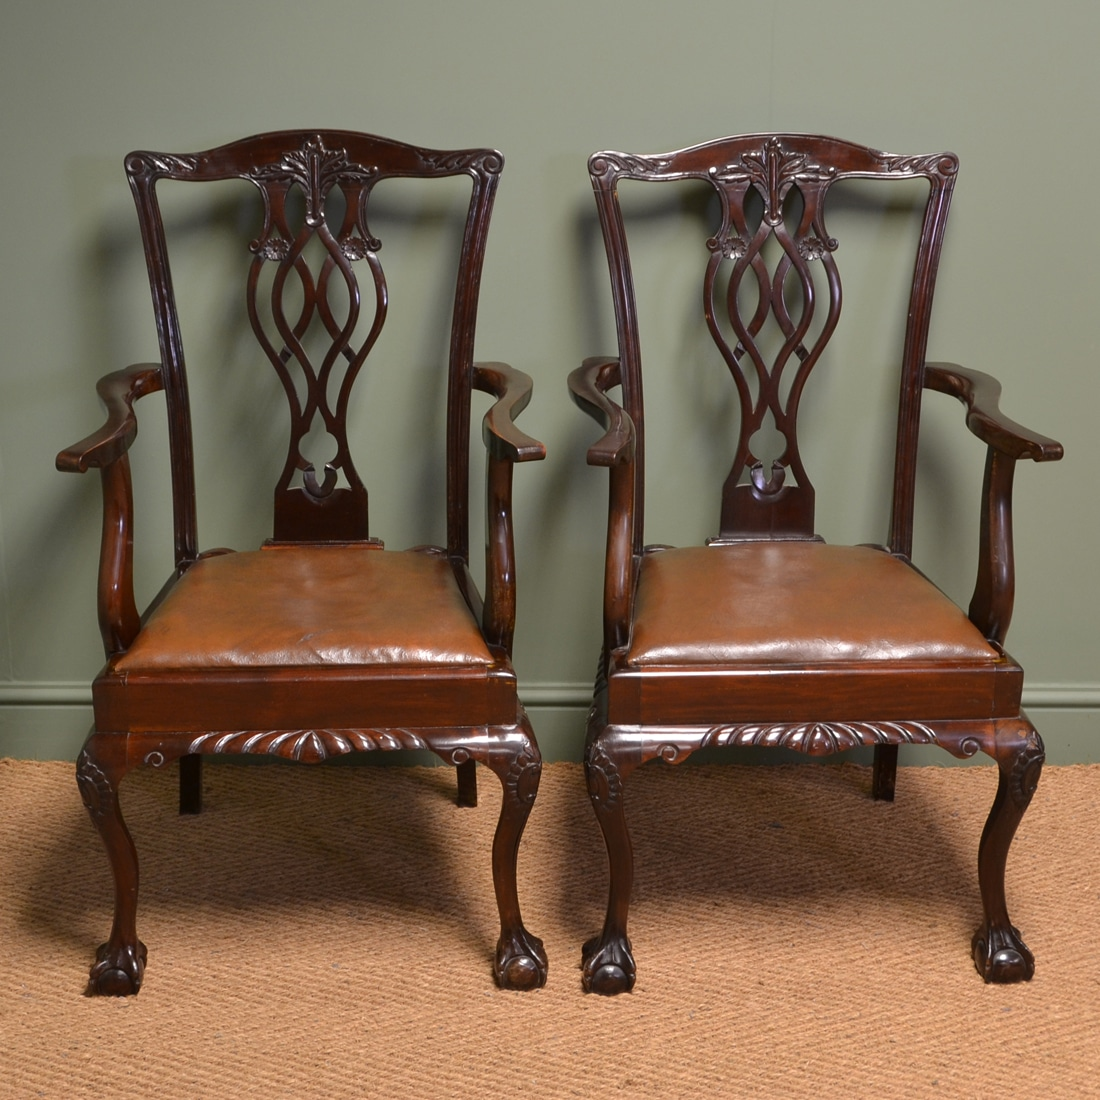 Chippendale Furniture: Sensational Pair Of Walnut Edwardian Chippendale Design